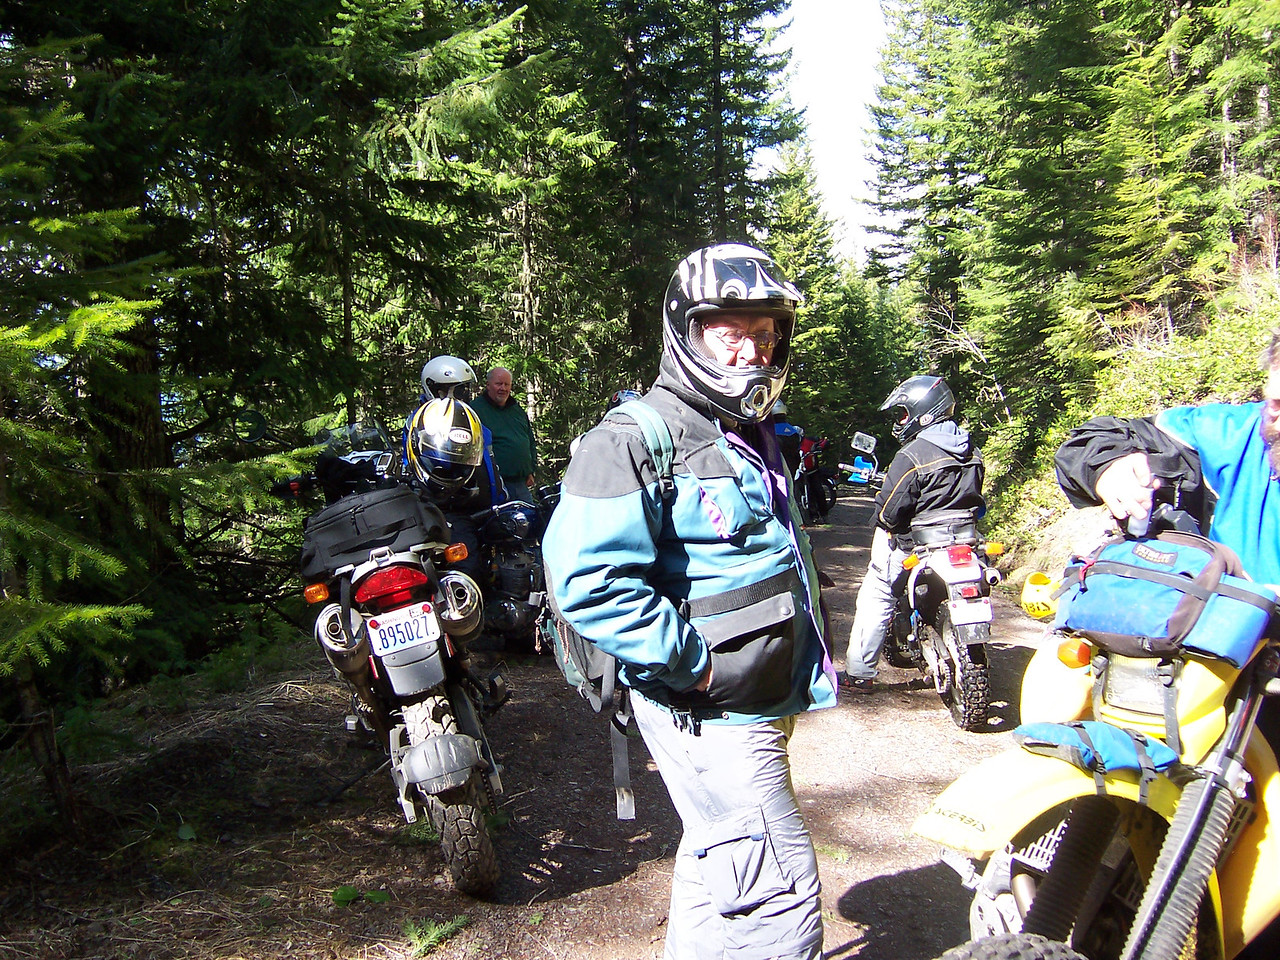 Gary, from Vancouver (formally Colorado), rides a KLR 250.